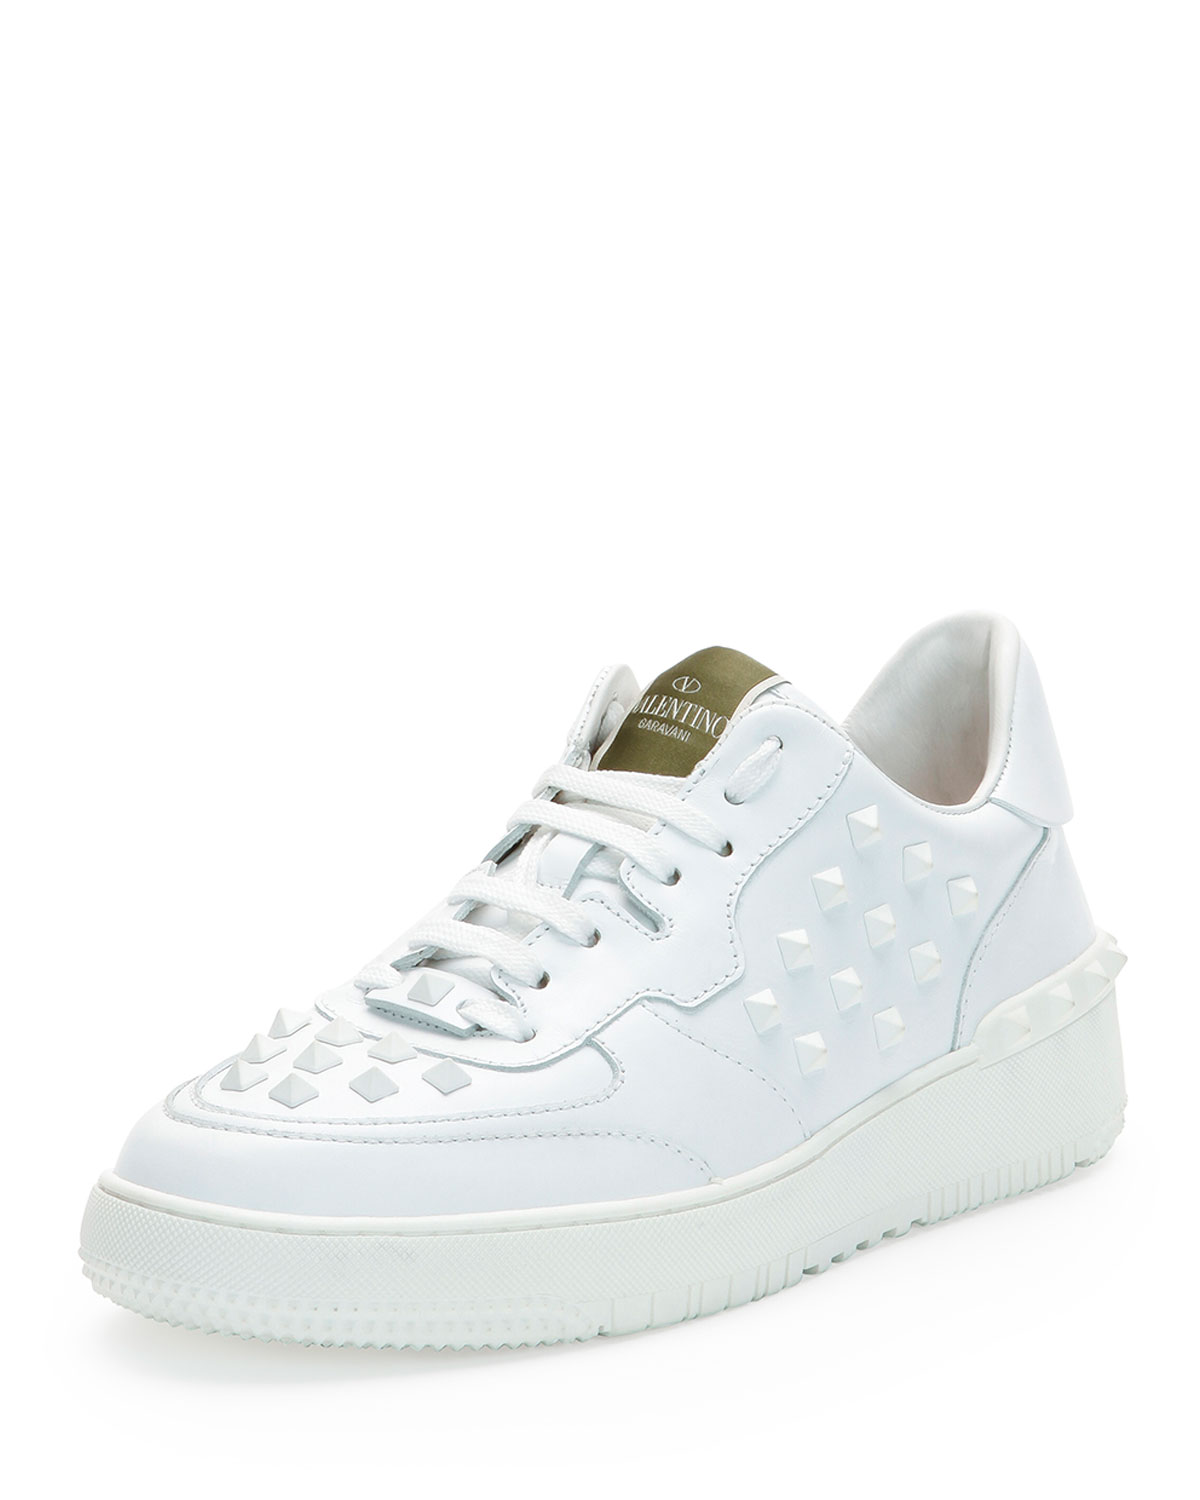 Rock Be Studded Low-Top Sneaker, White, Size: 40.5EU/7.5US - Valentino